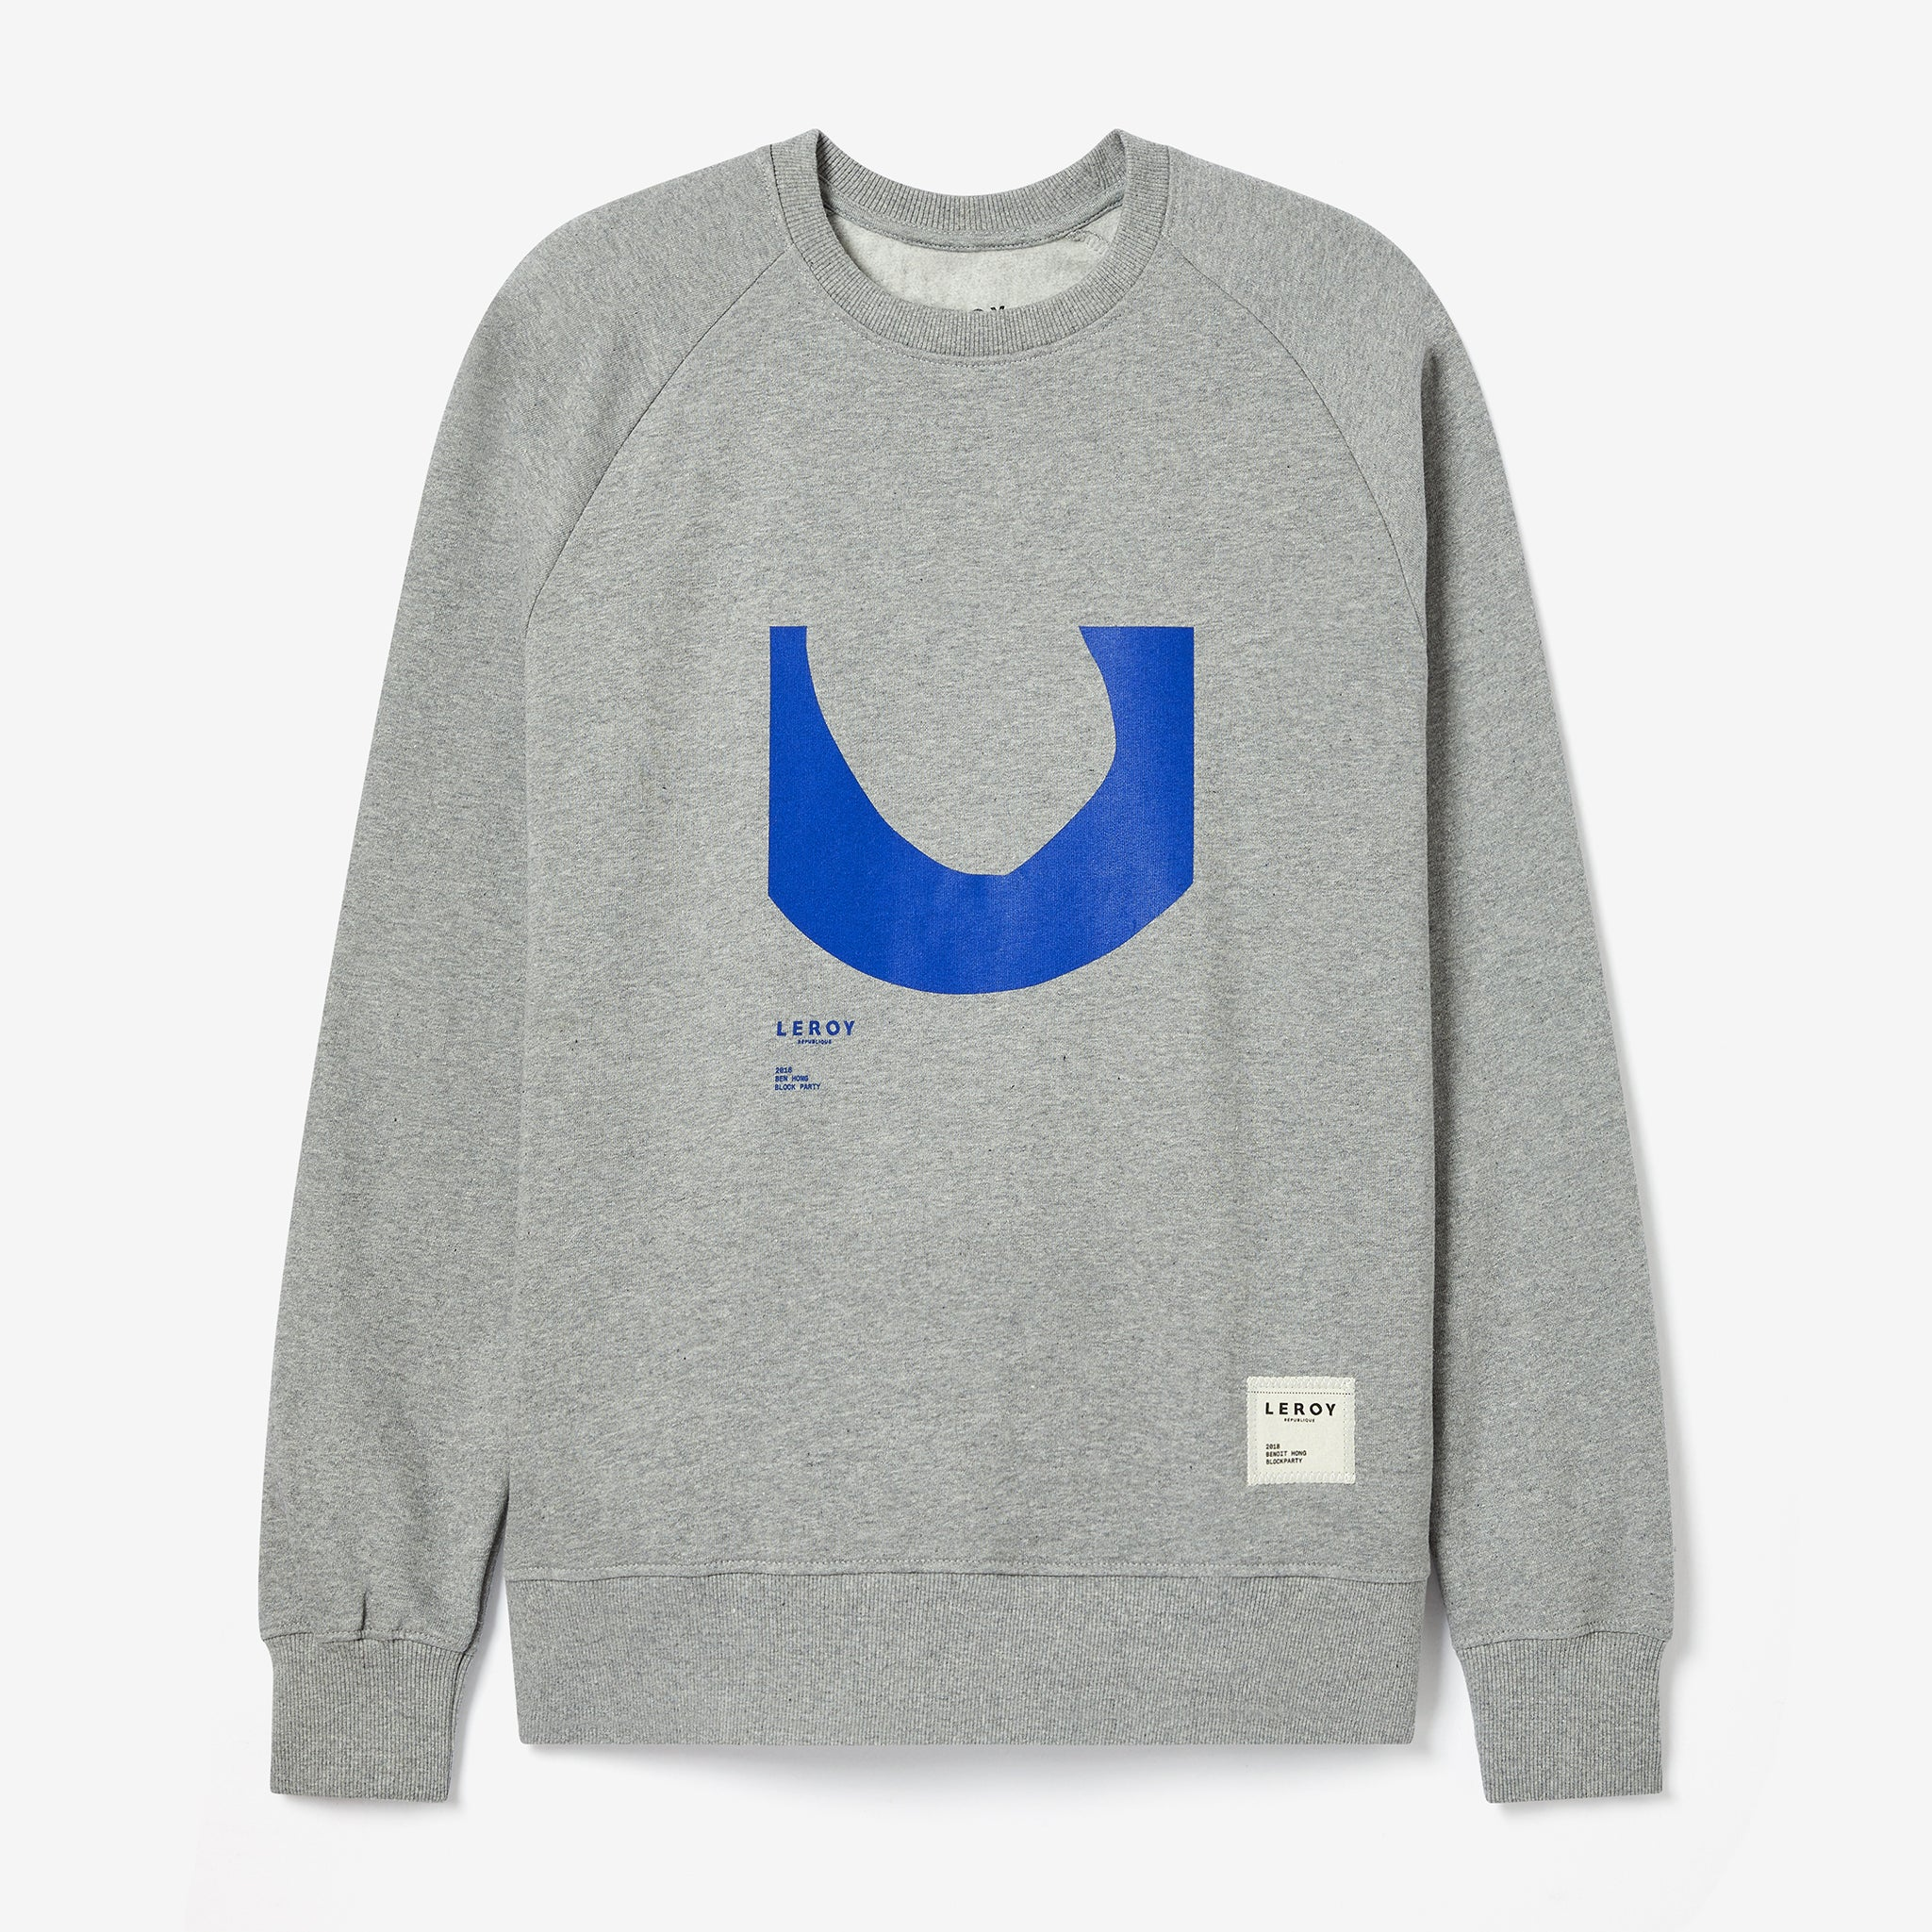 Ditch klein blue crew neck